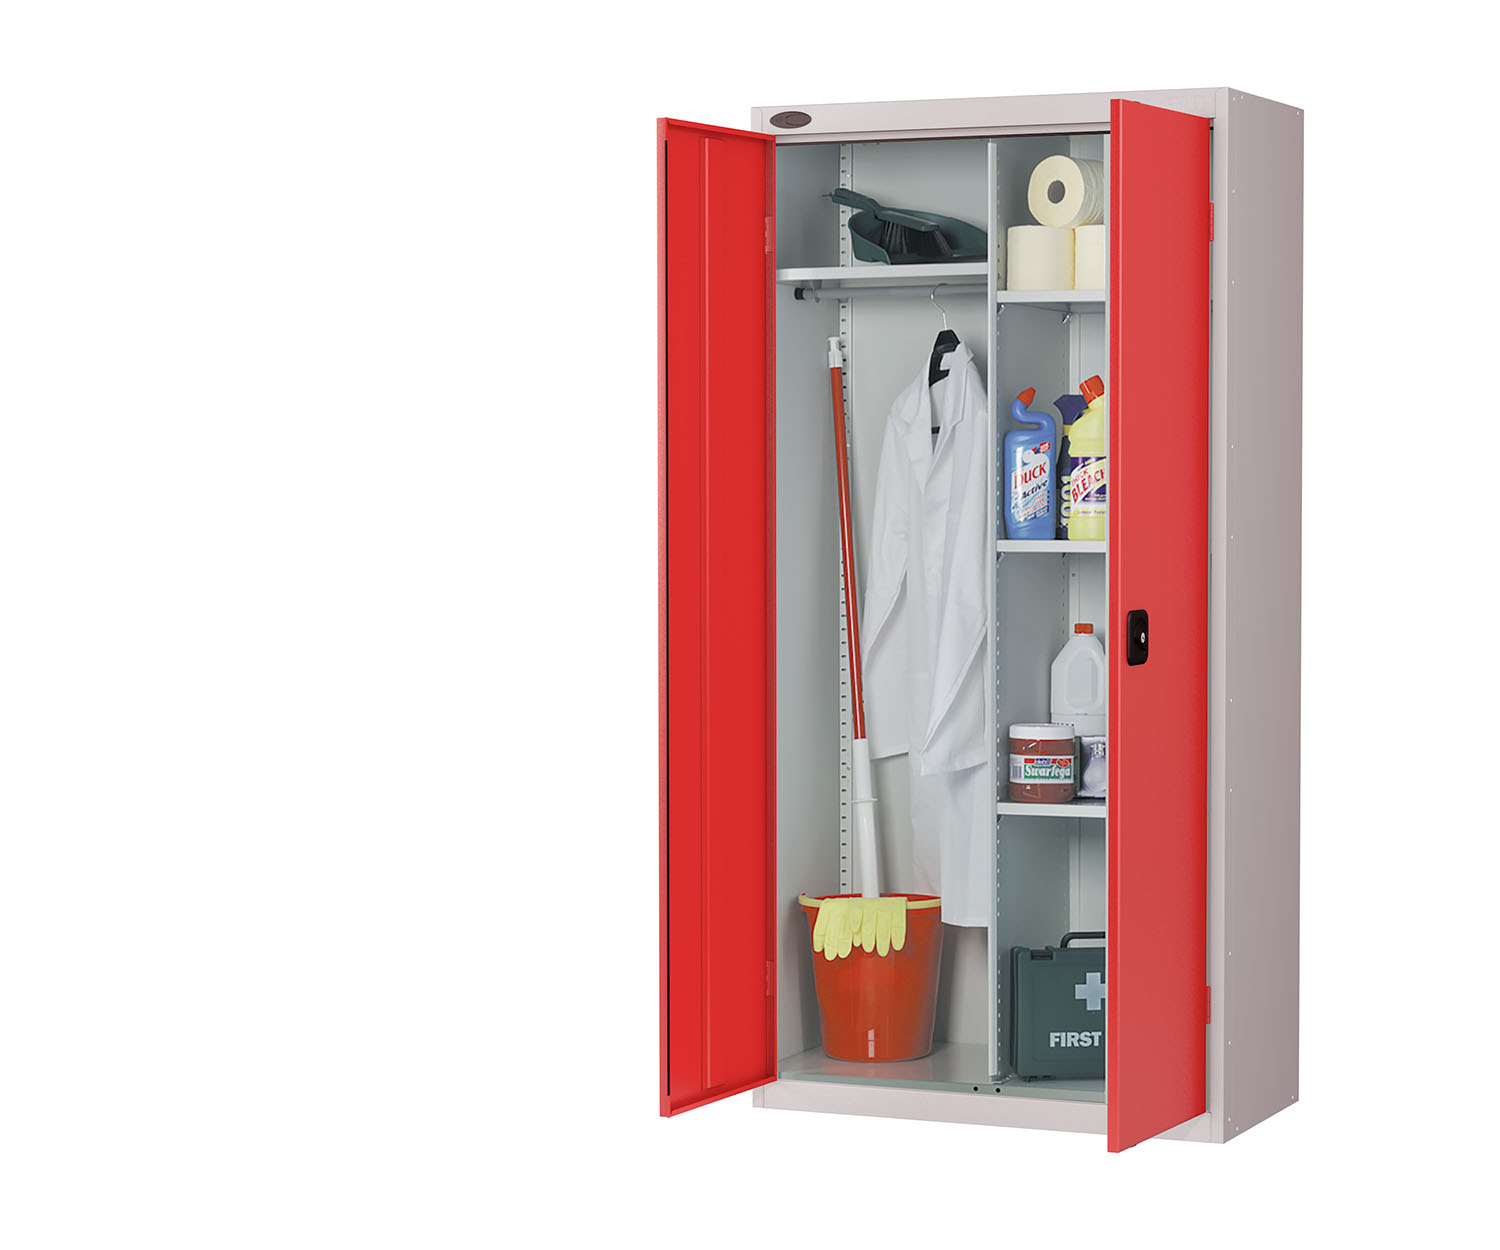 Probe cupboard wardrobe red